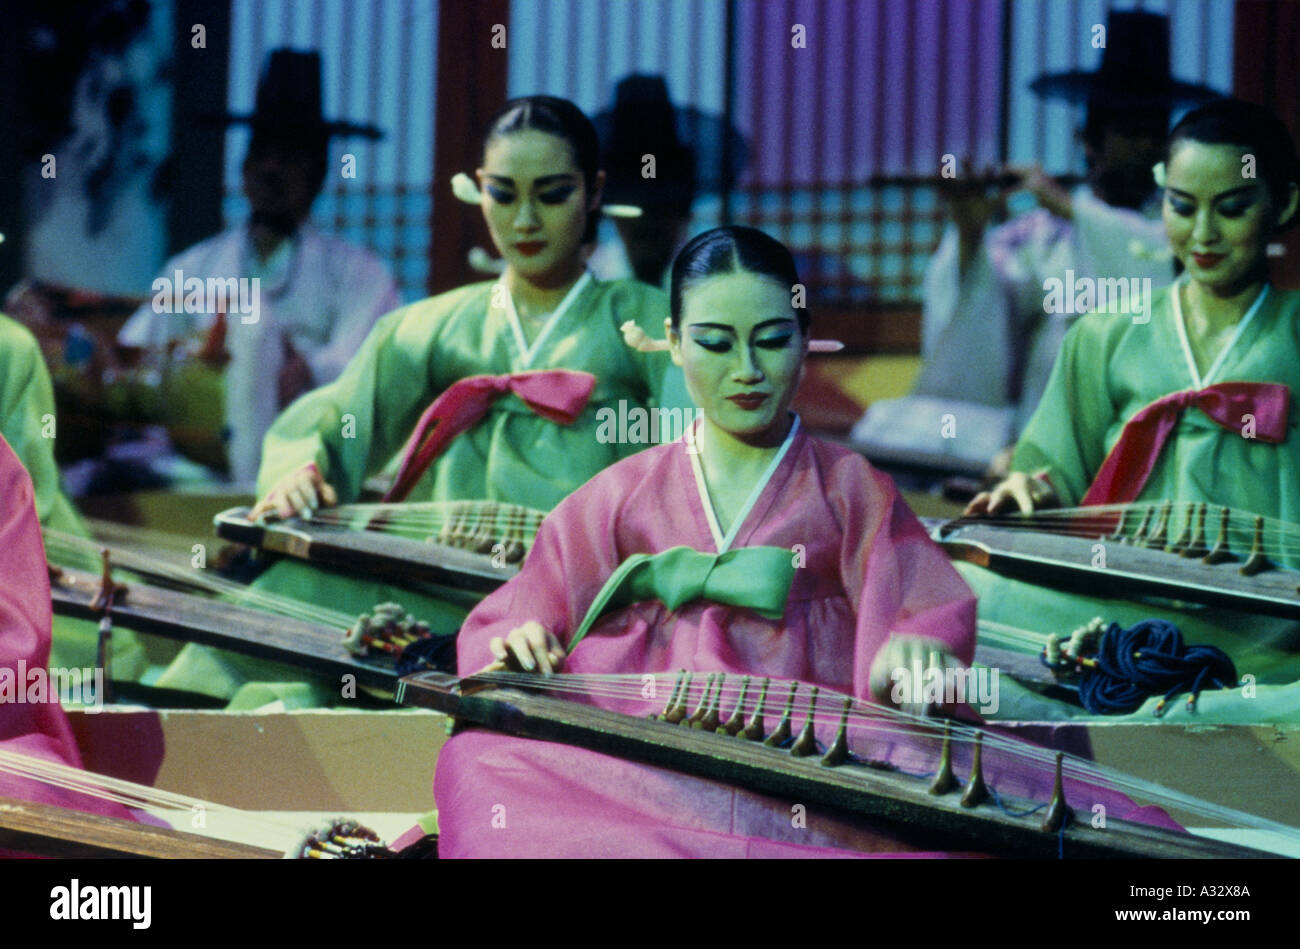 Women playing stringed instruments in traditional Korean show - Stock Image